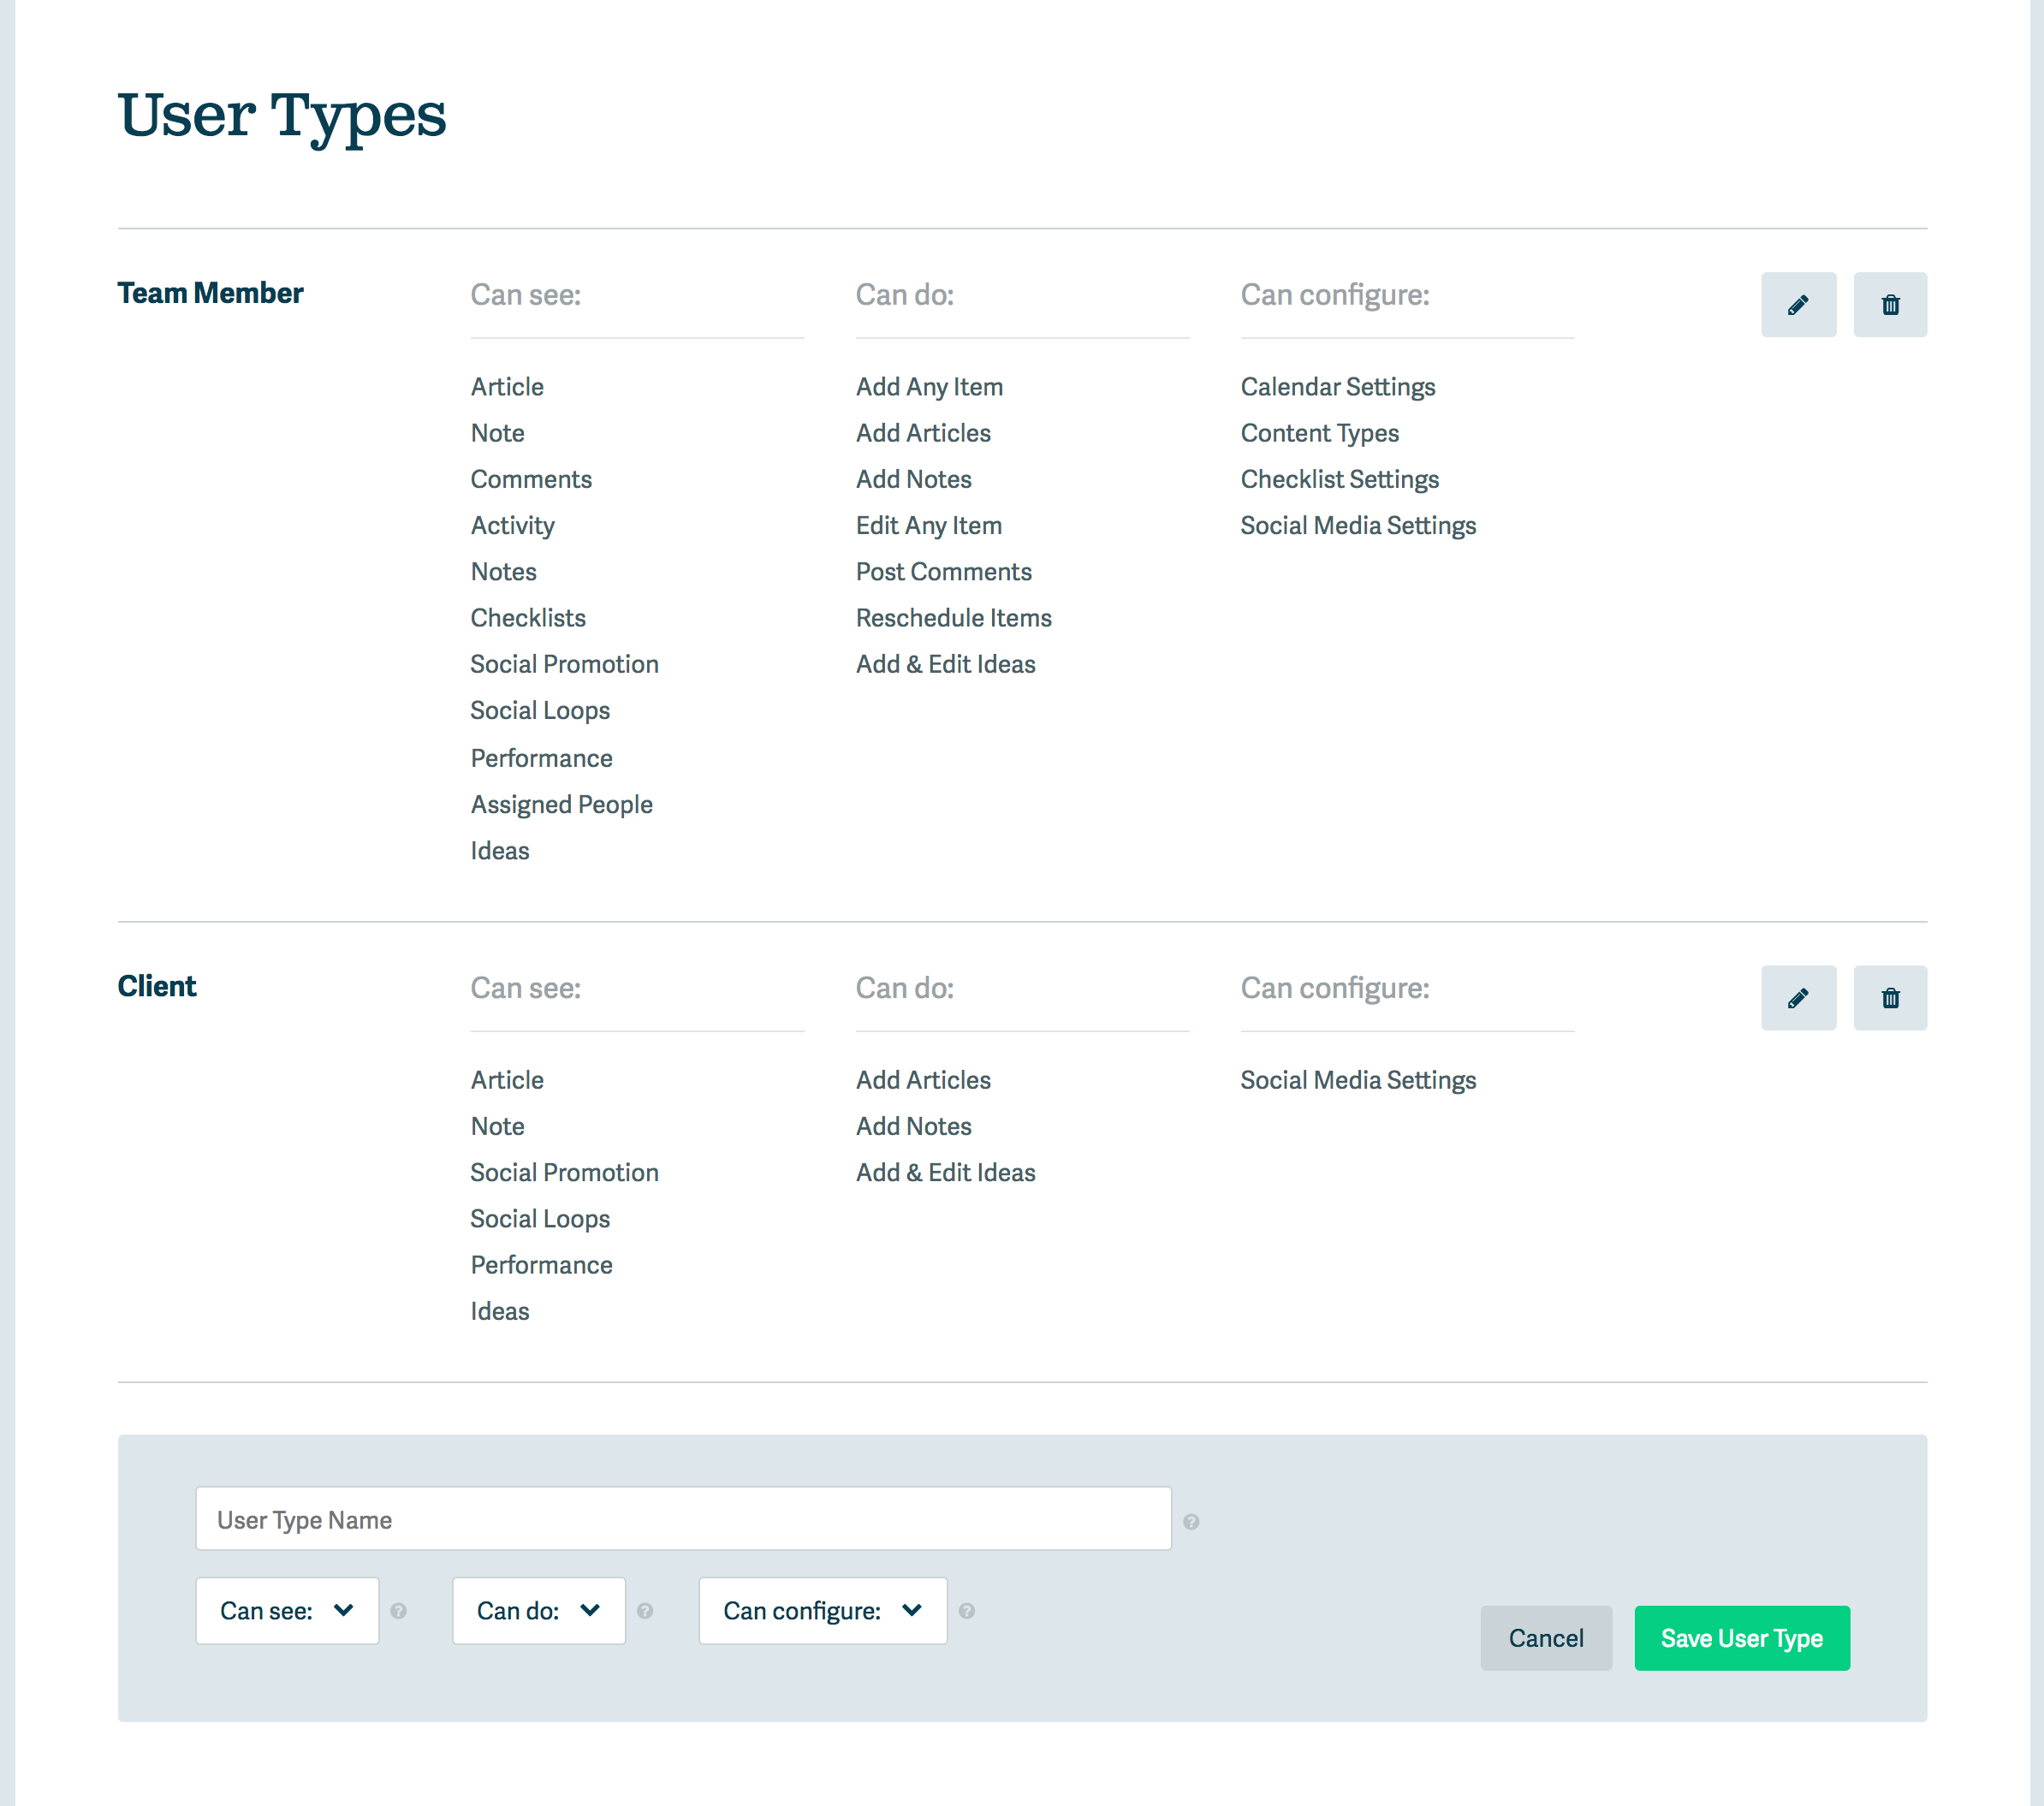 User Types interface